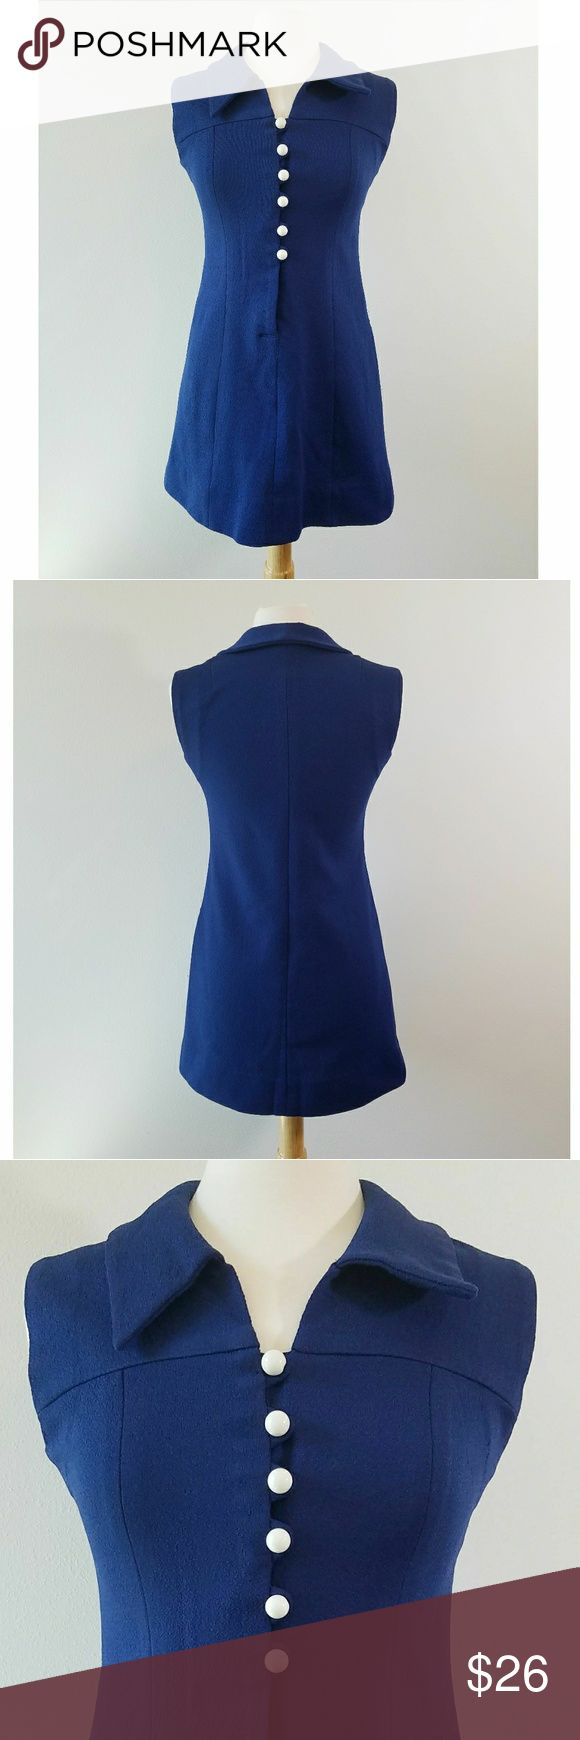 """Vintage 1960's Navy Mini Dress Vintage 1960's Navy Mini Dress. Excellent condition. Large buttons. Collared neck. Polyester. Dress form is a size 6 and this dress fits it well, but please refer to measurements for best fit. Bust 36"""", Waist 33"""", Hips 40"""". Vintage Dresses"""